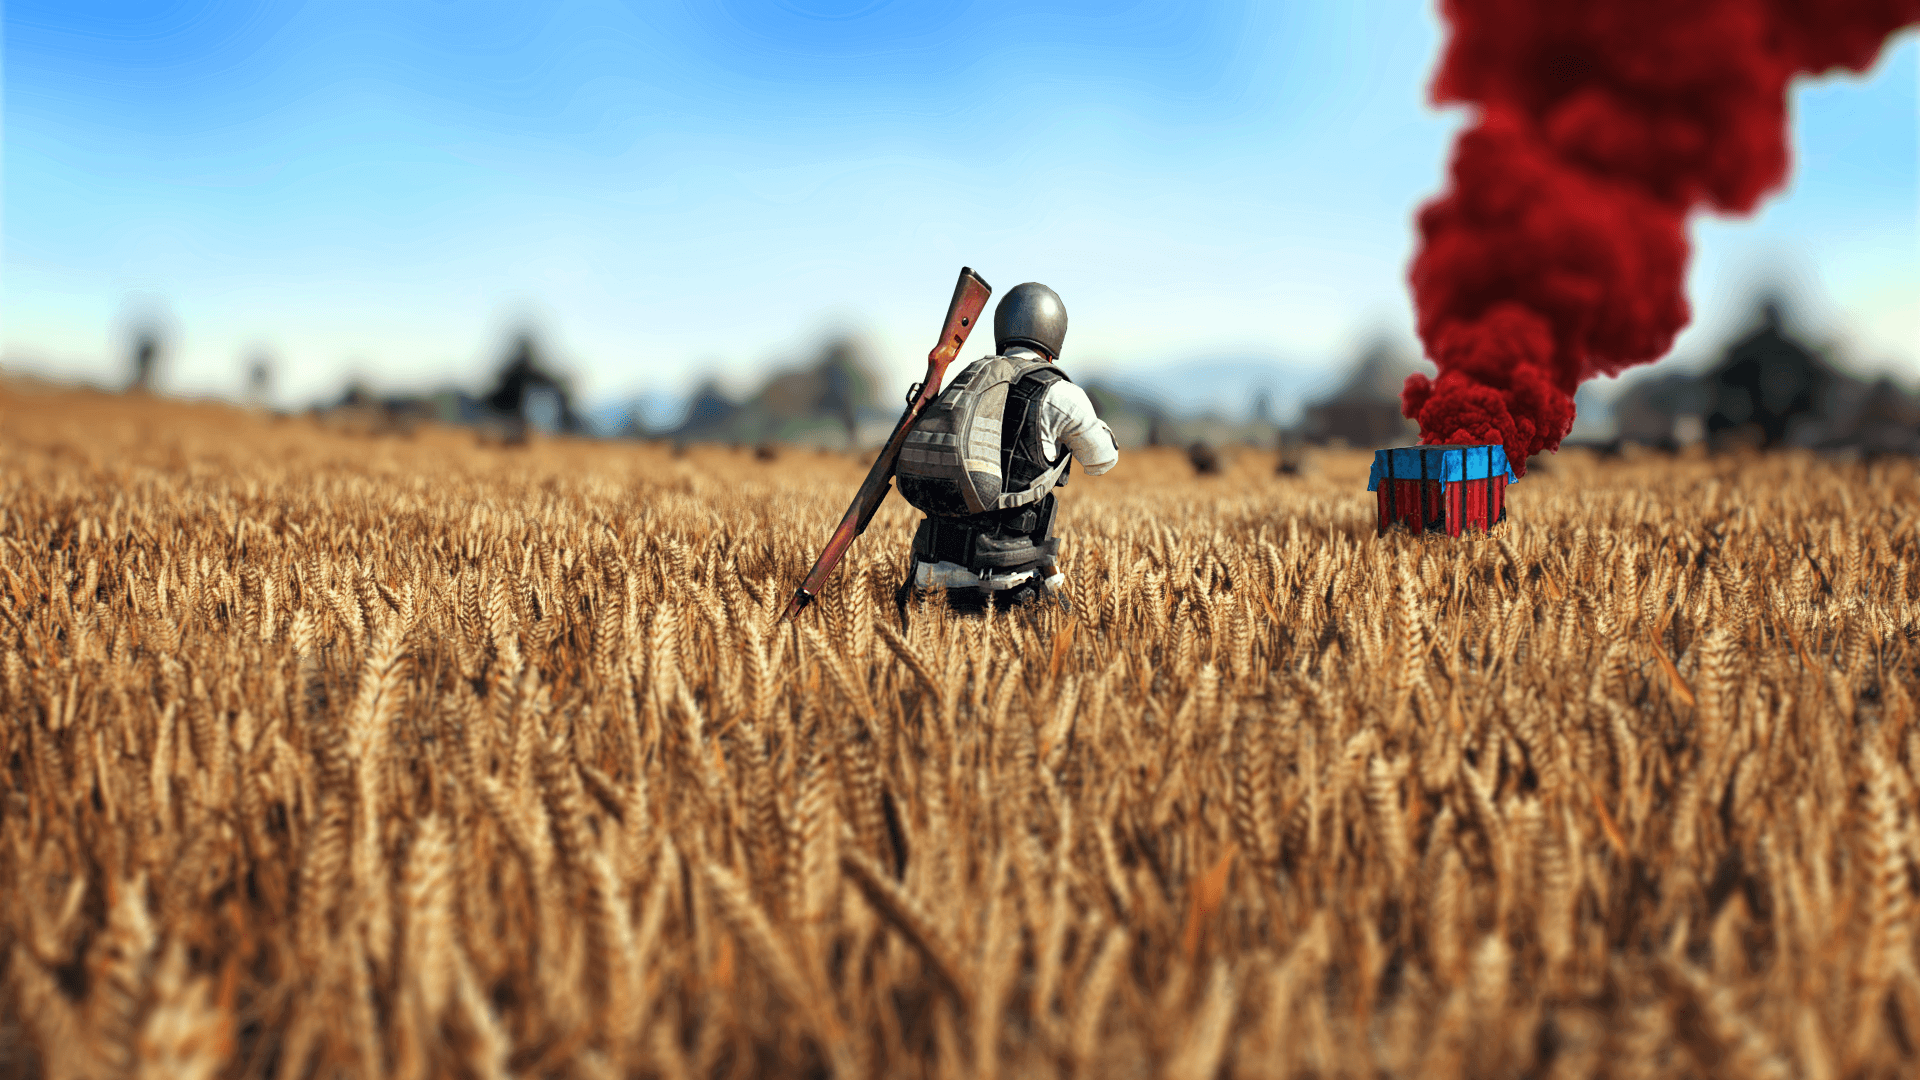 How to Play Guide for PlayerUnknown's Battlegrounds